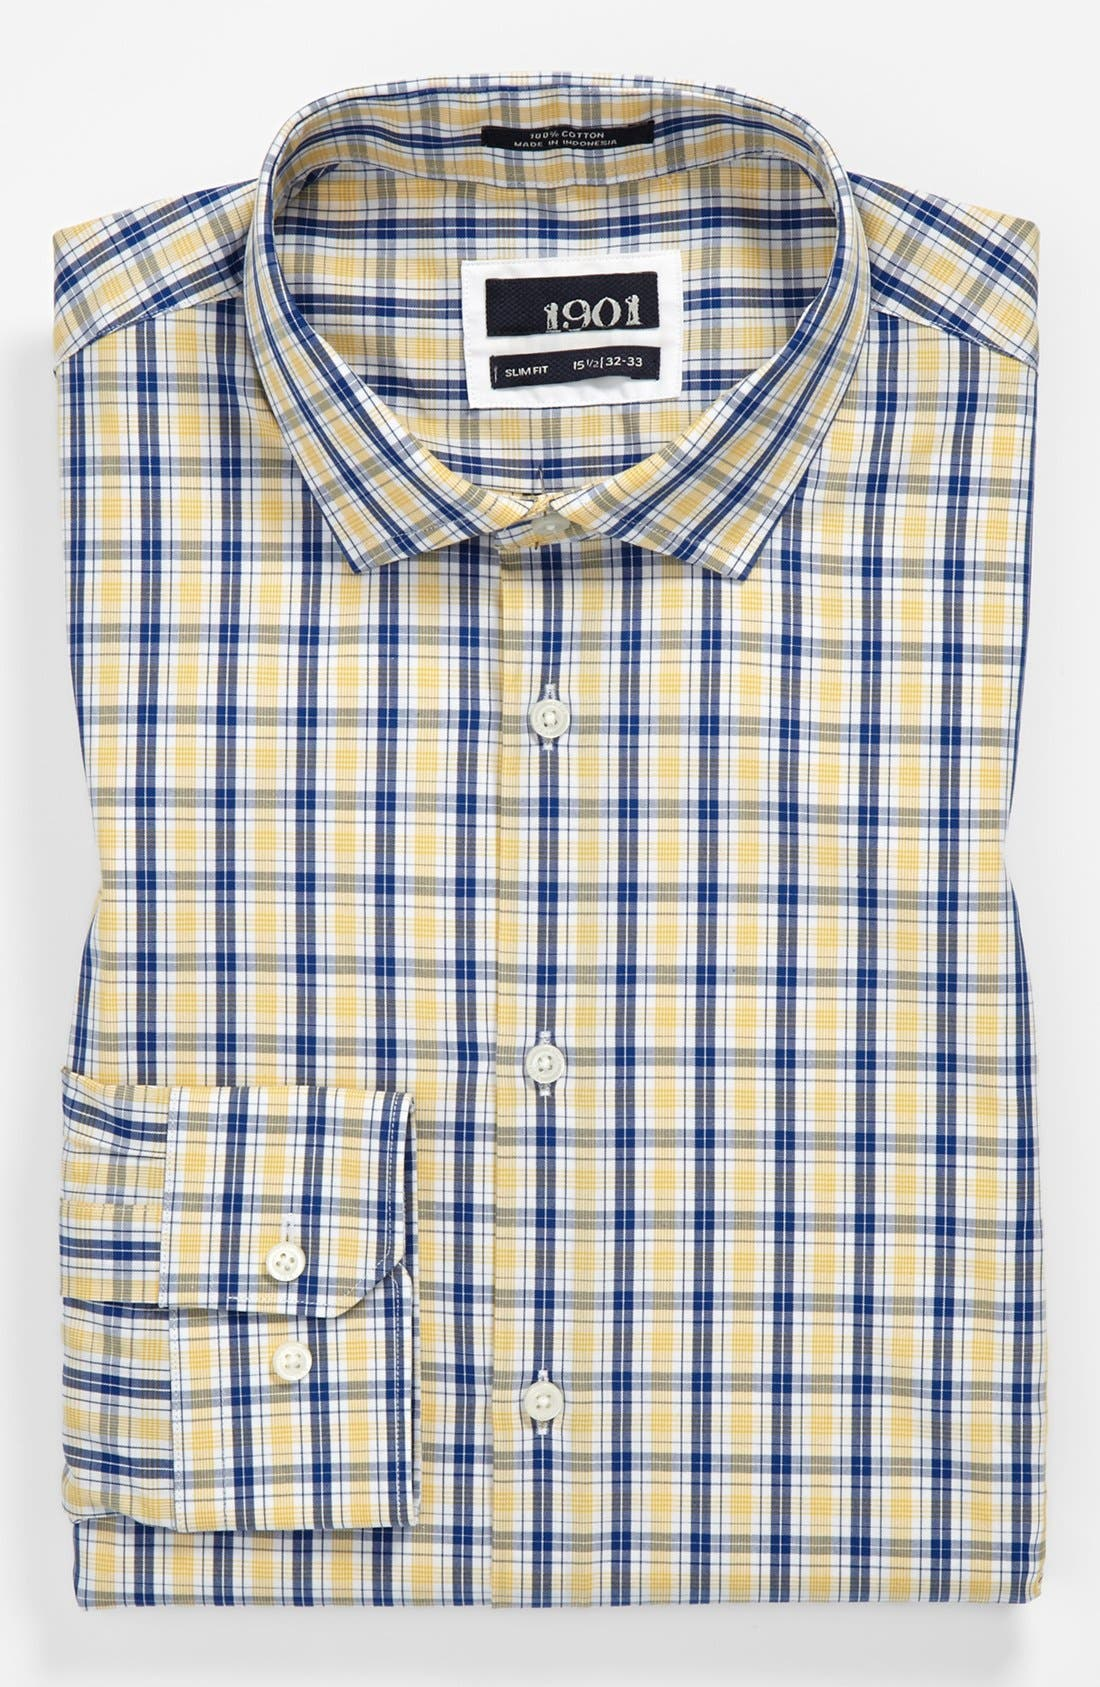 Alternate Image 1 Selected - 1901 Slim Fit Plaid Dress Shirt